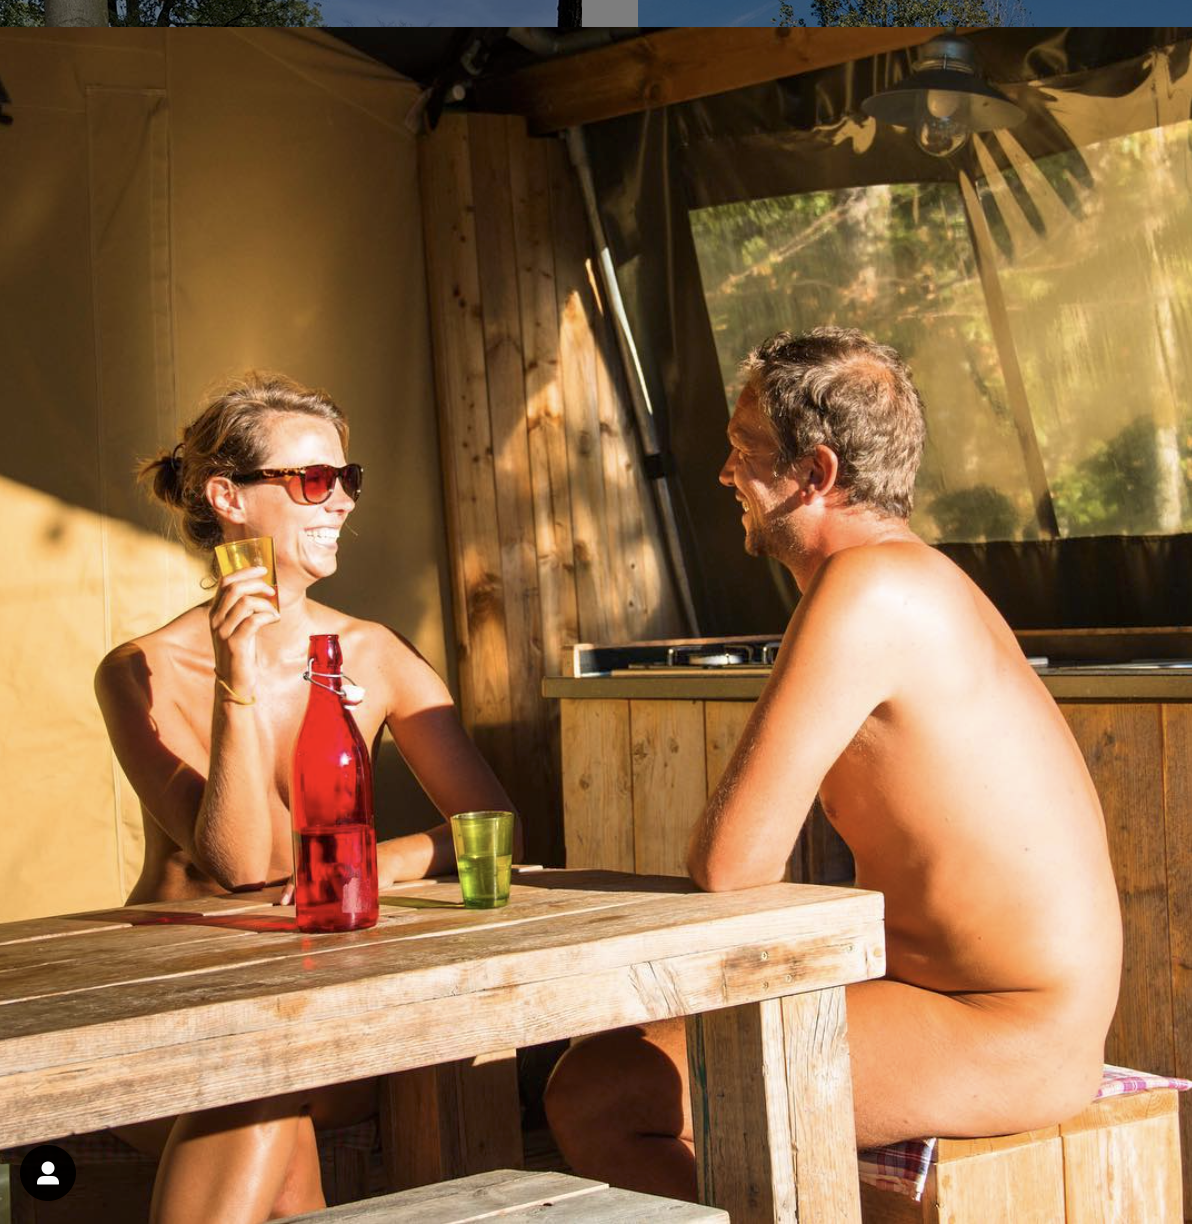 Naked Confessions: Gender Bias?  When you tell people you're a naturist?